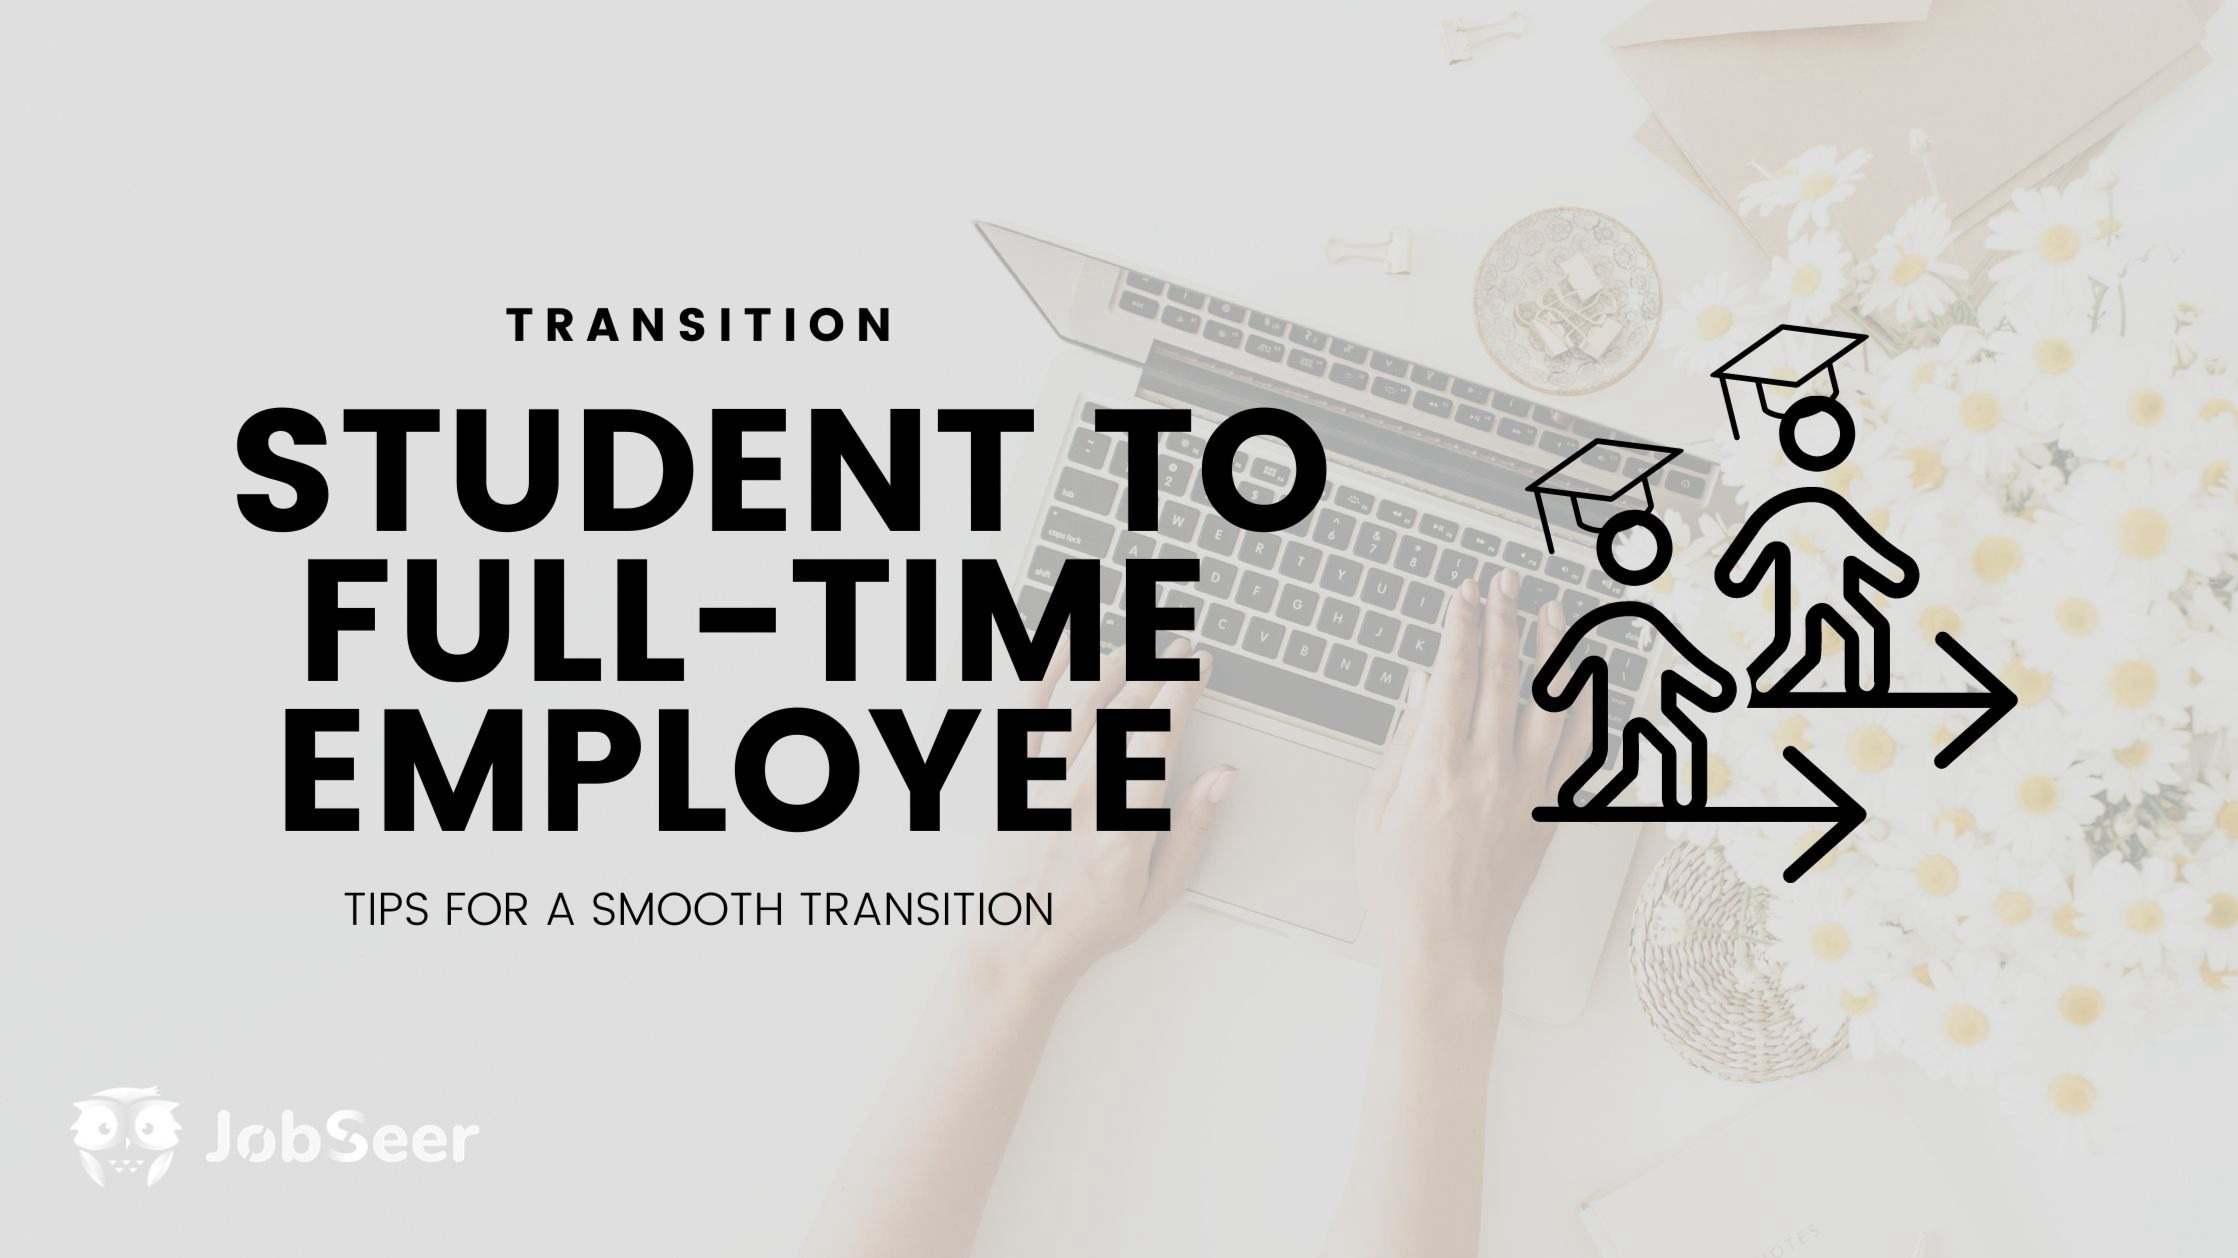 tips-to-have-a-smooth-transition-from-a-recent-graduate-student-to-a-full-time-employee-during-the-pandemic